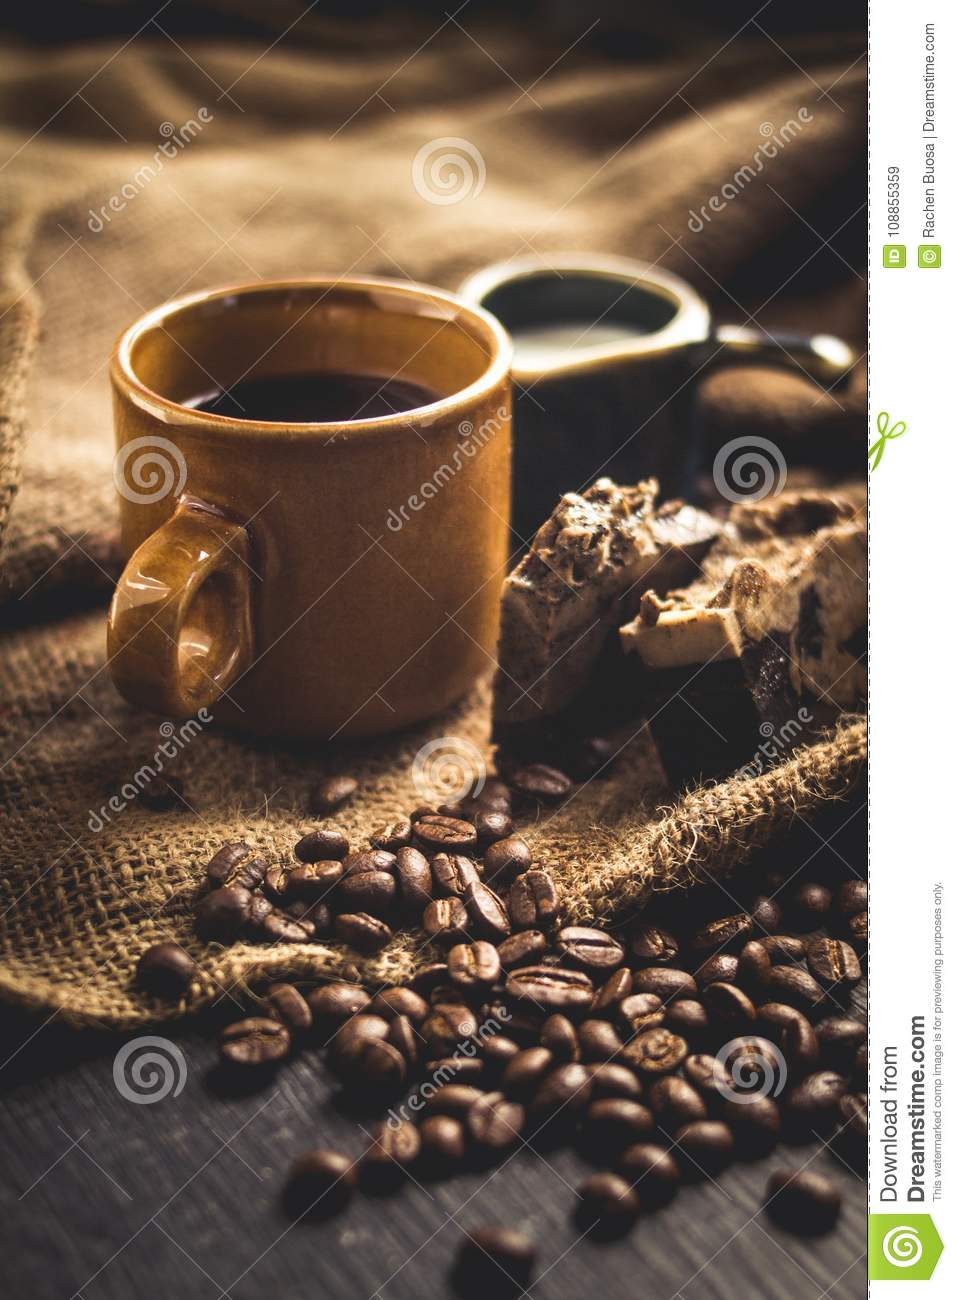 Black coffee Arabica In brown glass And milk and dessert Sack background in low light area